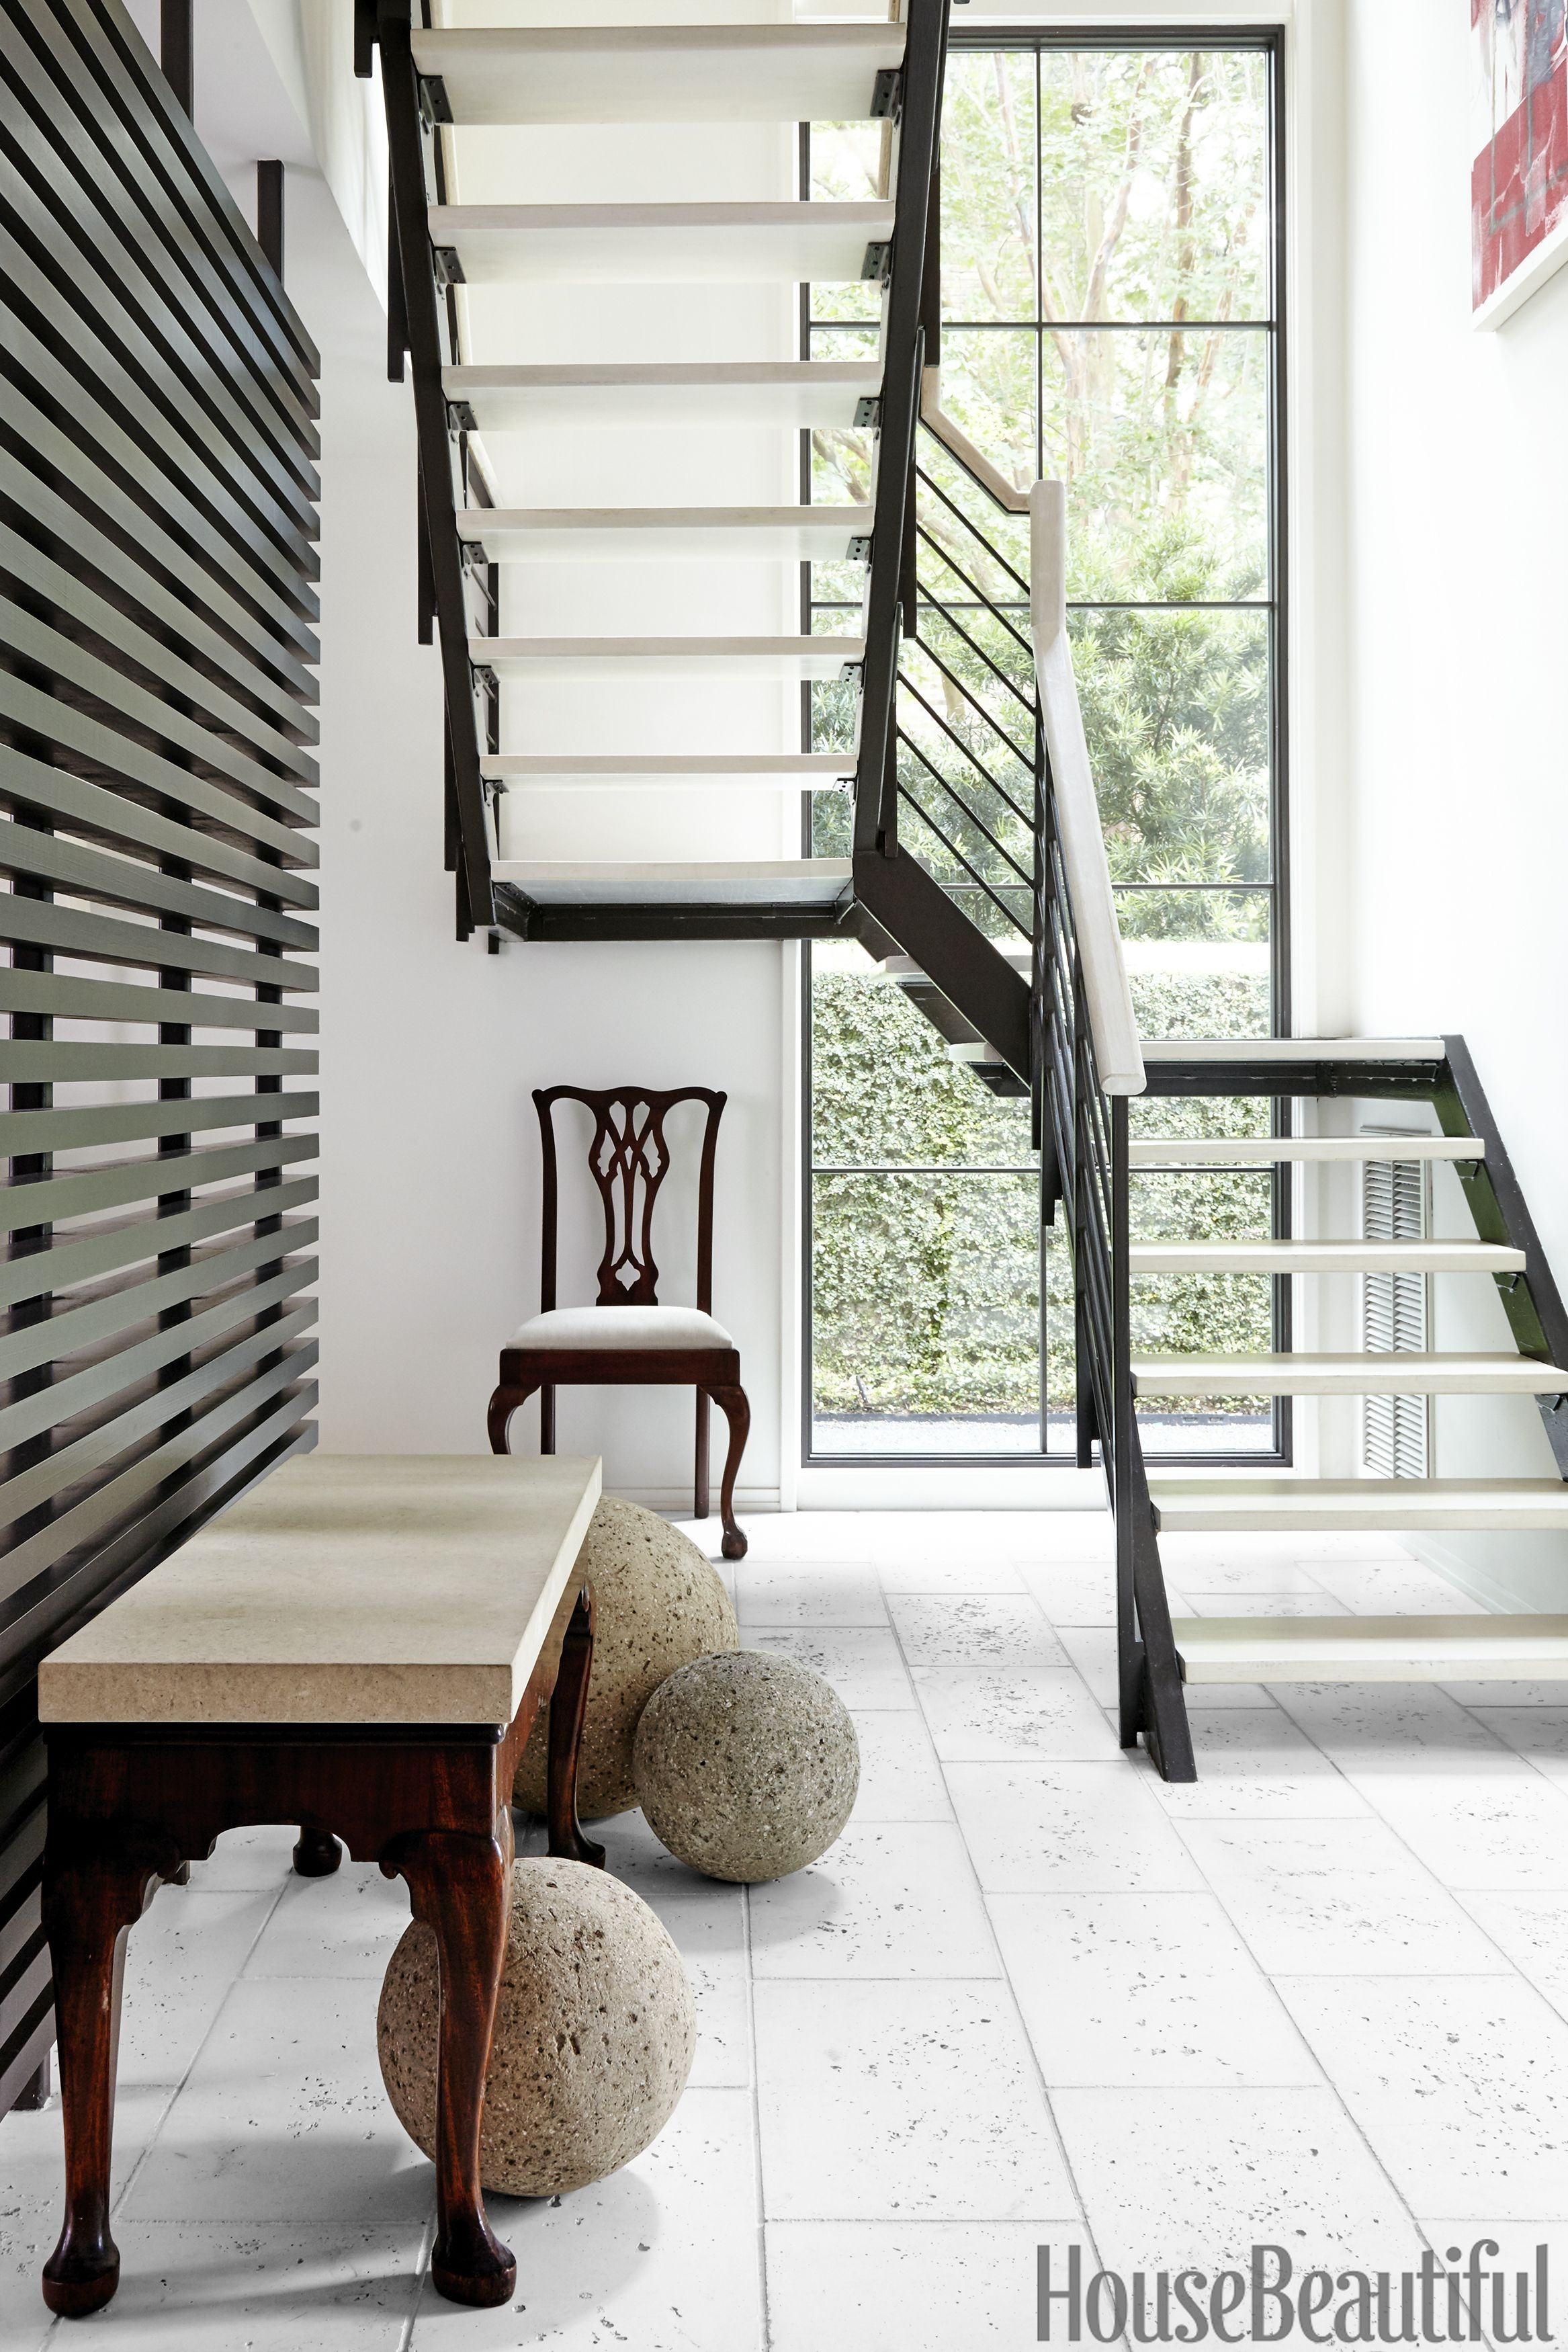 25 Unique Stair Designs Beautiful Stair Ideas For Your House | Stairs In Home Design | Wall | Luxury | Creative | Home Out | Ultra Modern